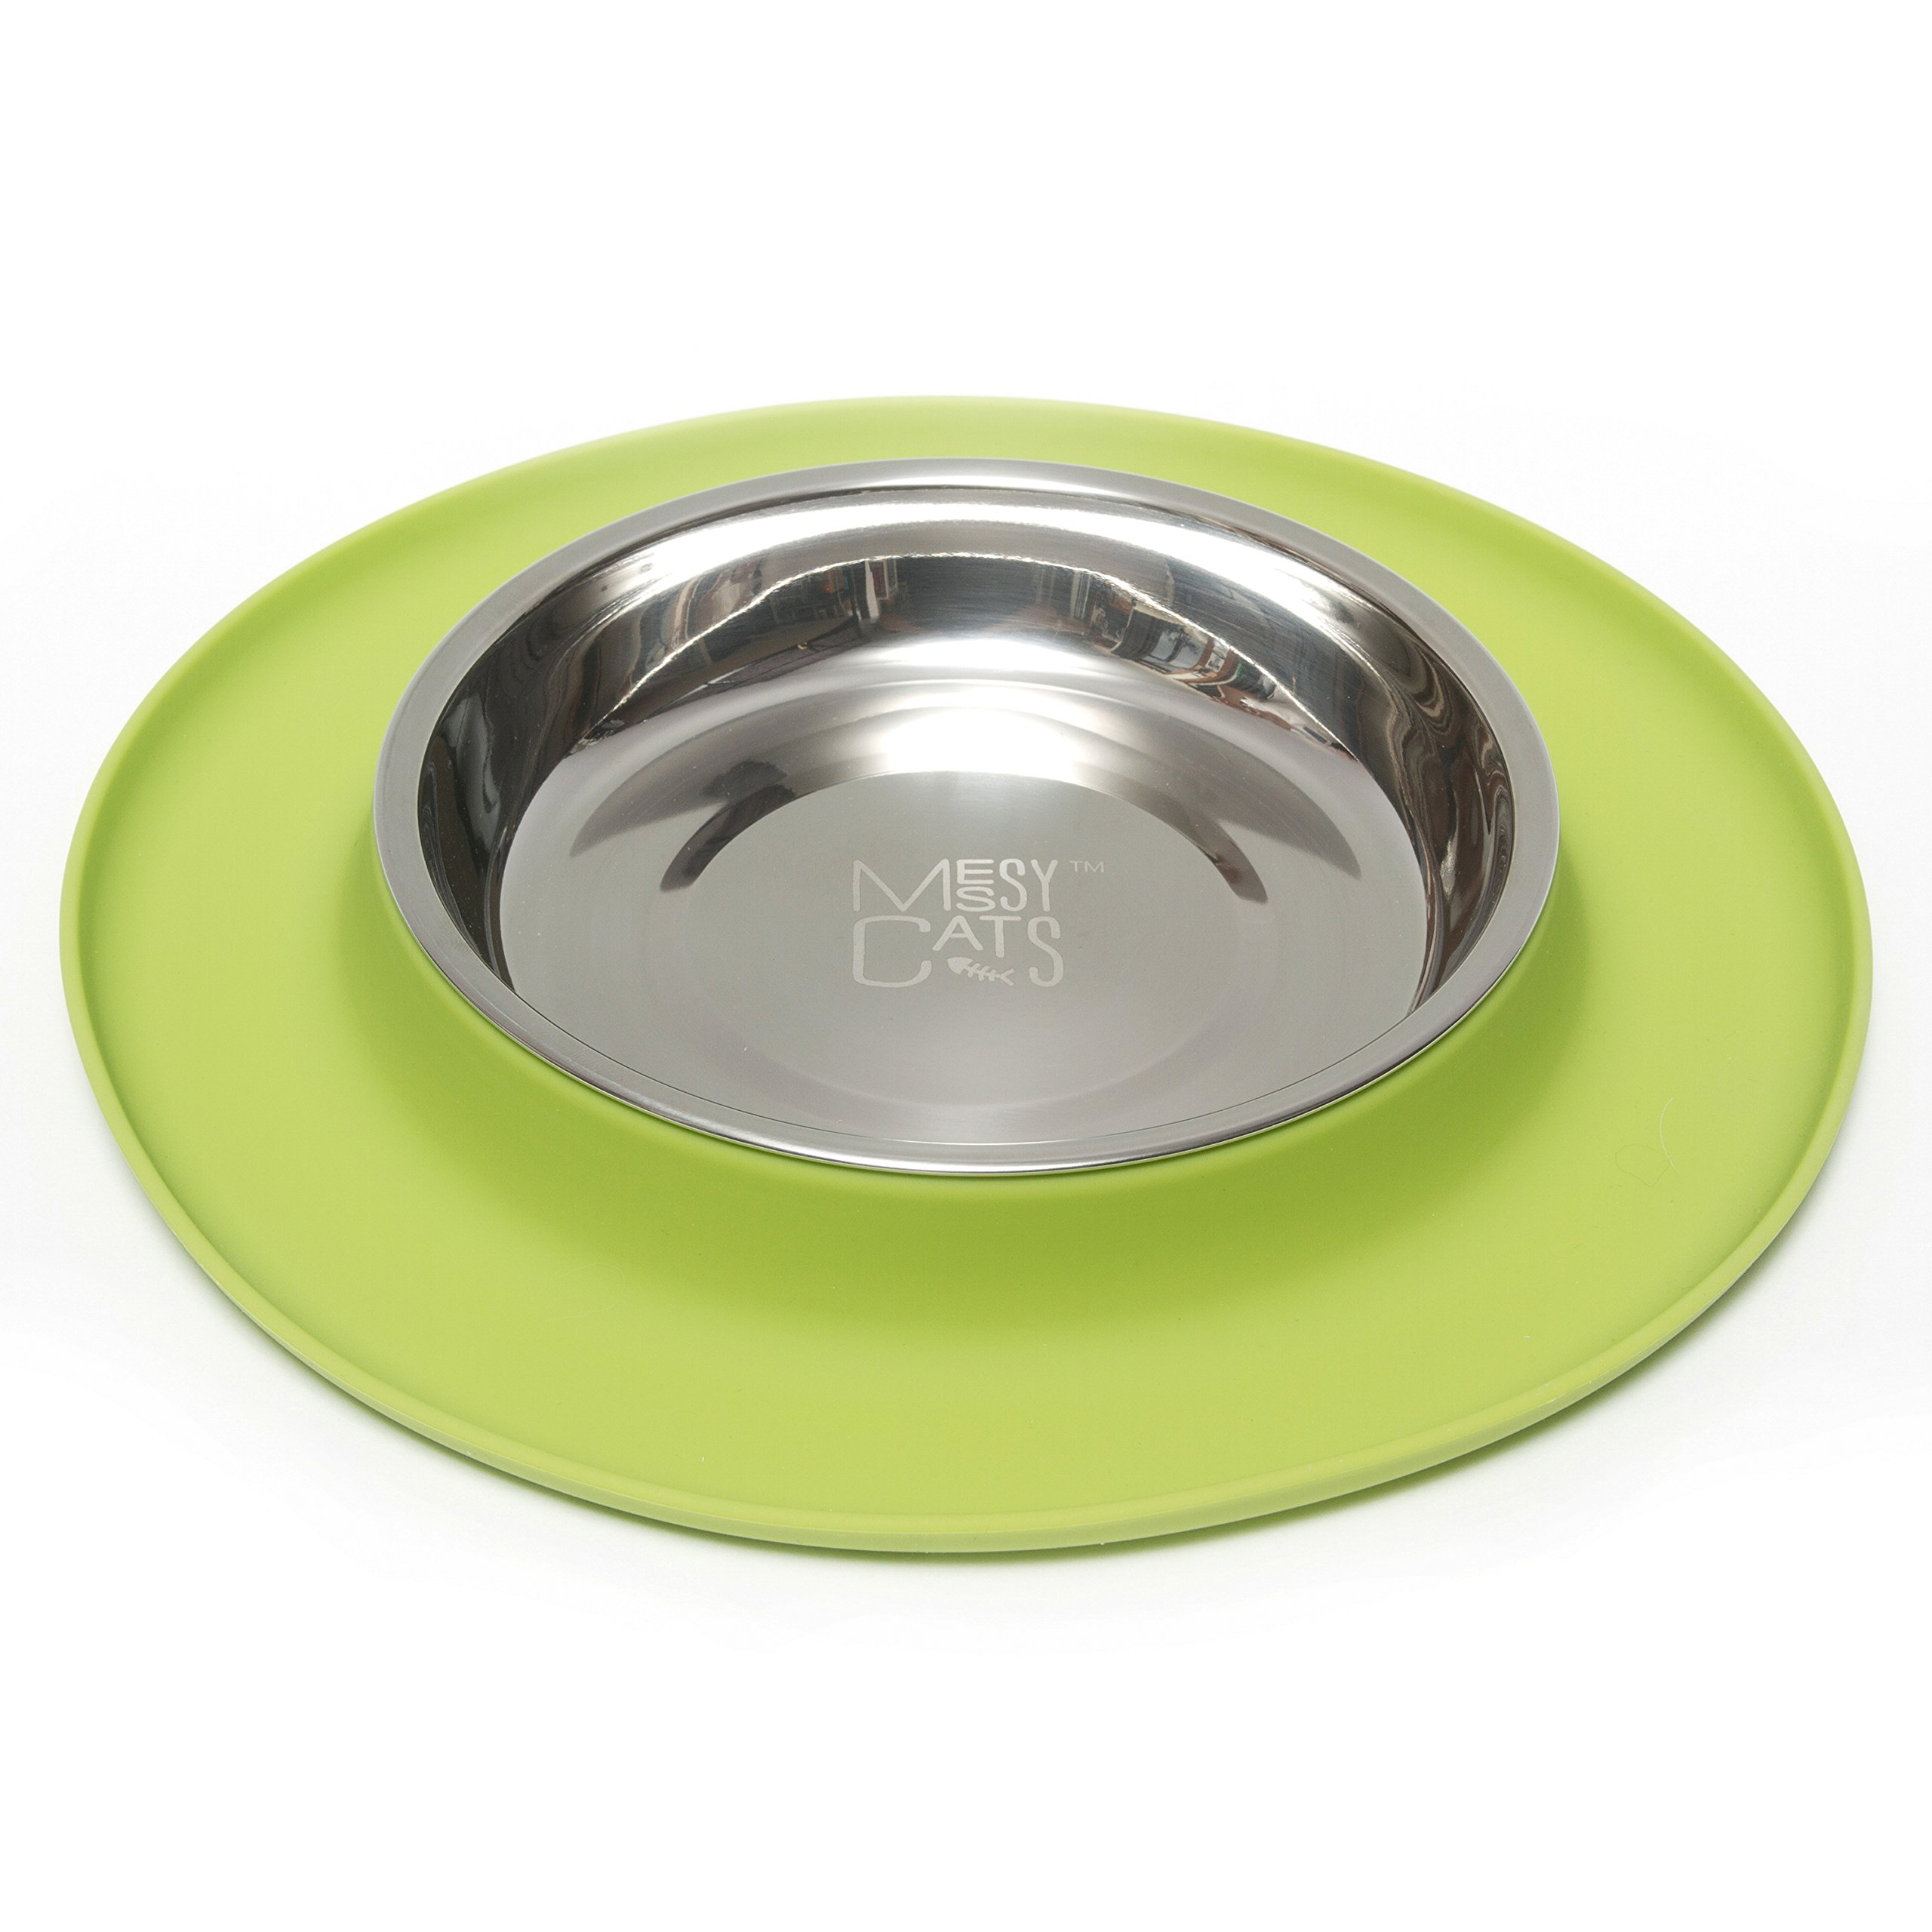 Messy Cats Stainless Steel Cat Feeder with Non-Slip Silicone Base, Green